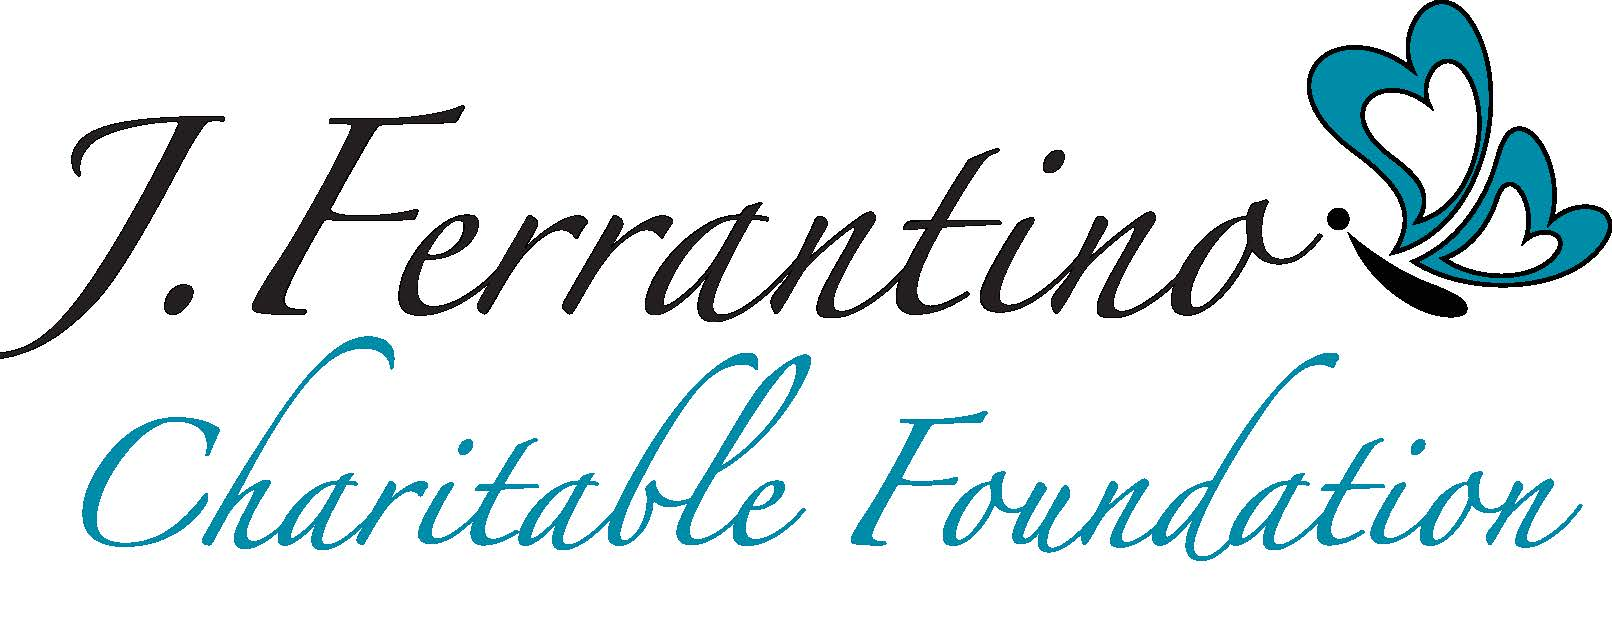 J. Ferrantino Charitable Foundation